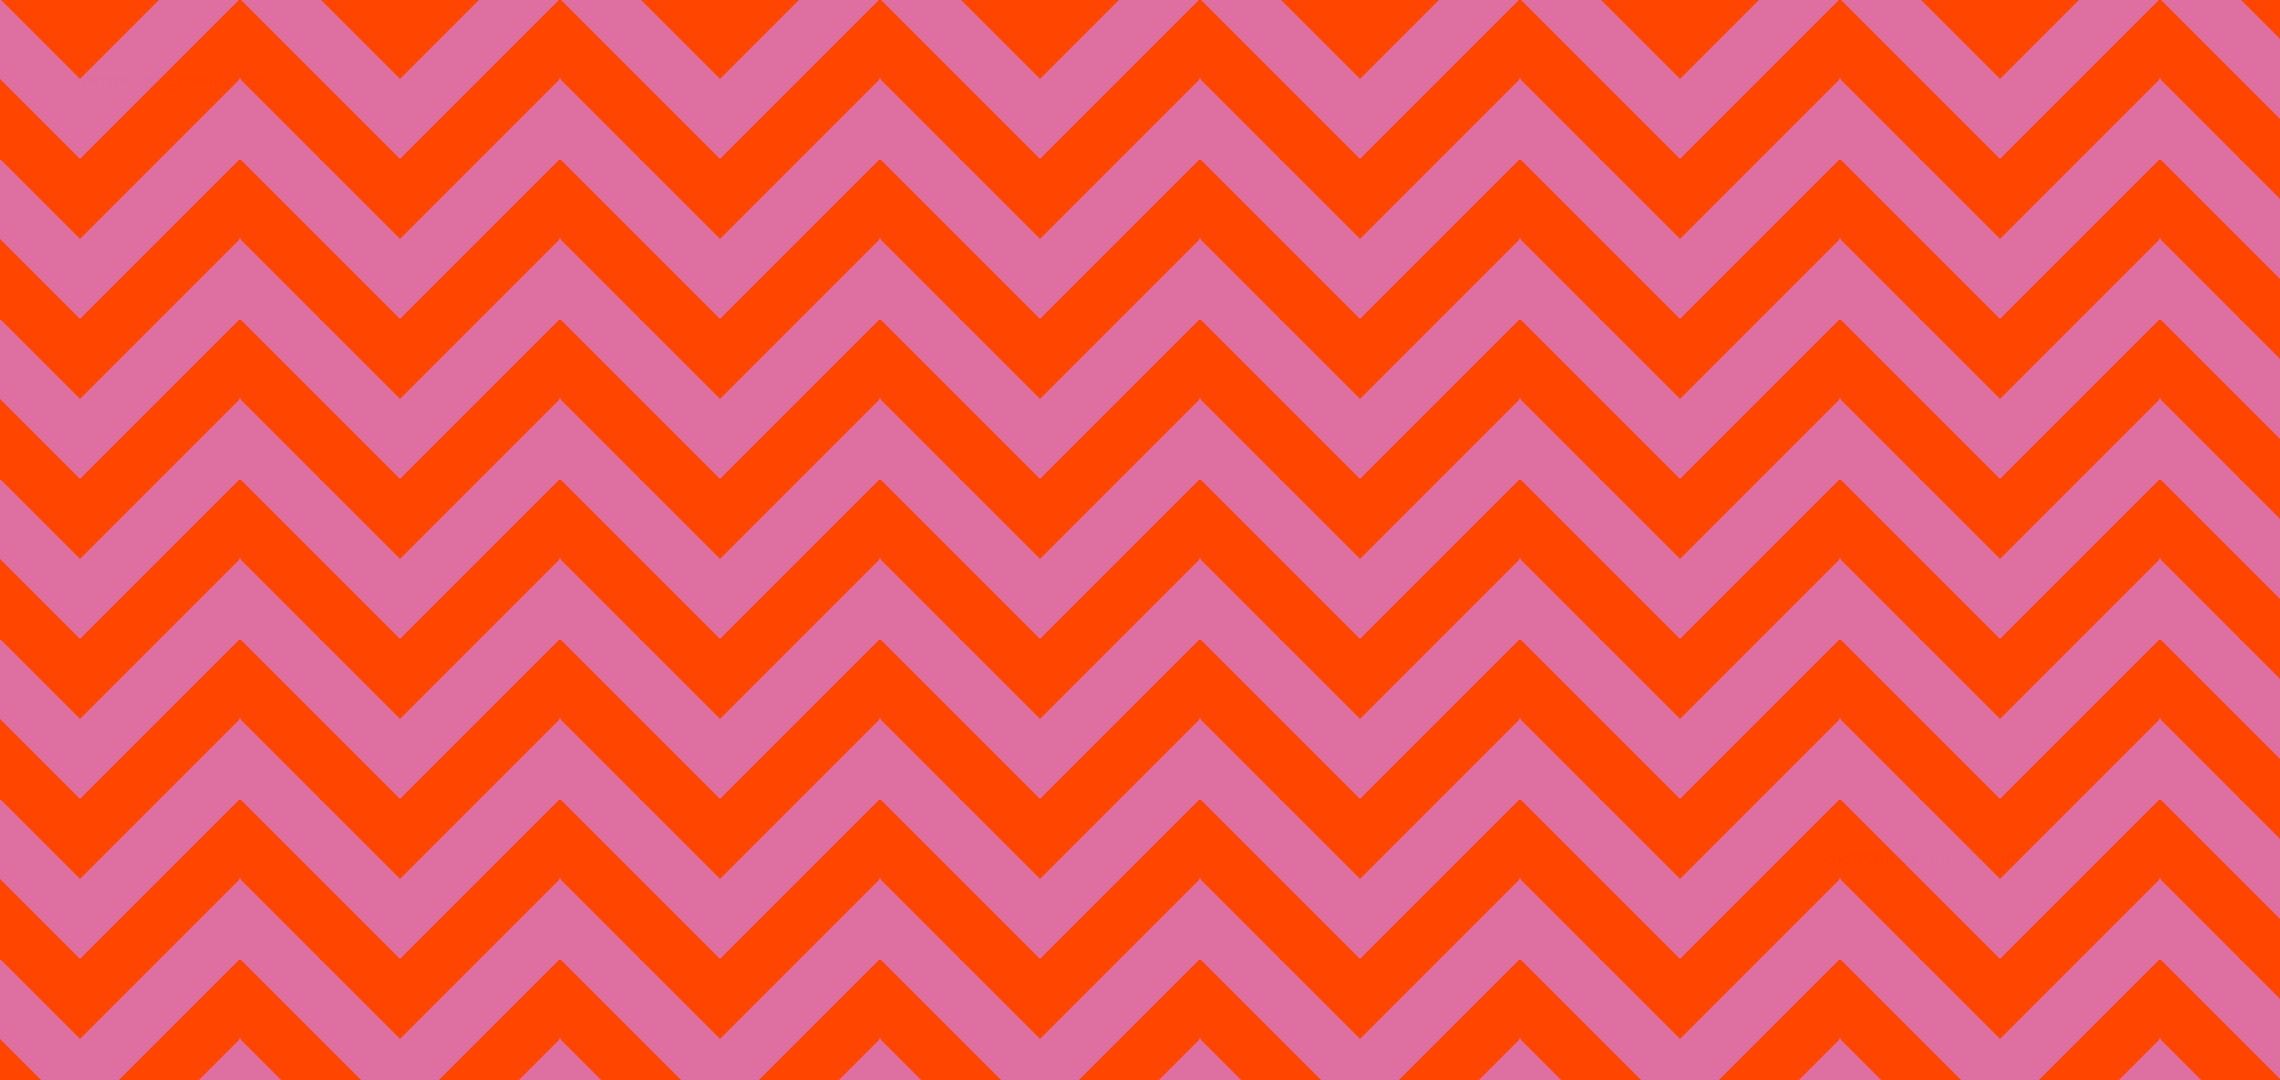 2280x1080 #DE70A1 Chinese Pink #FF4500 Orange Red Wide Chevron Background